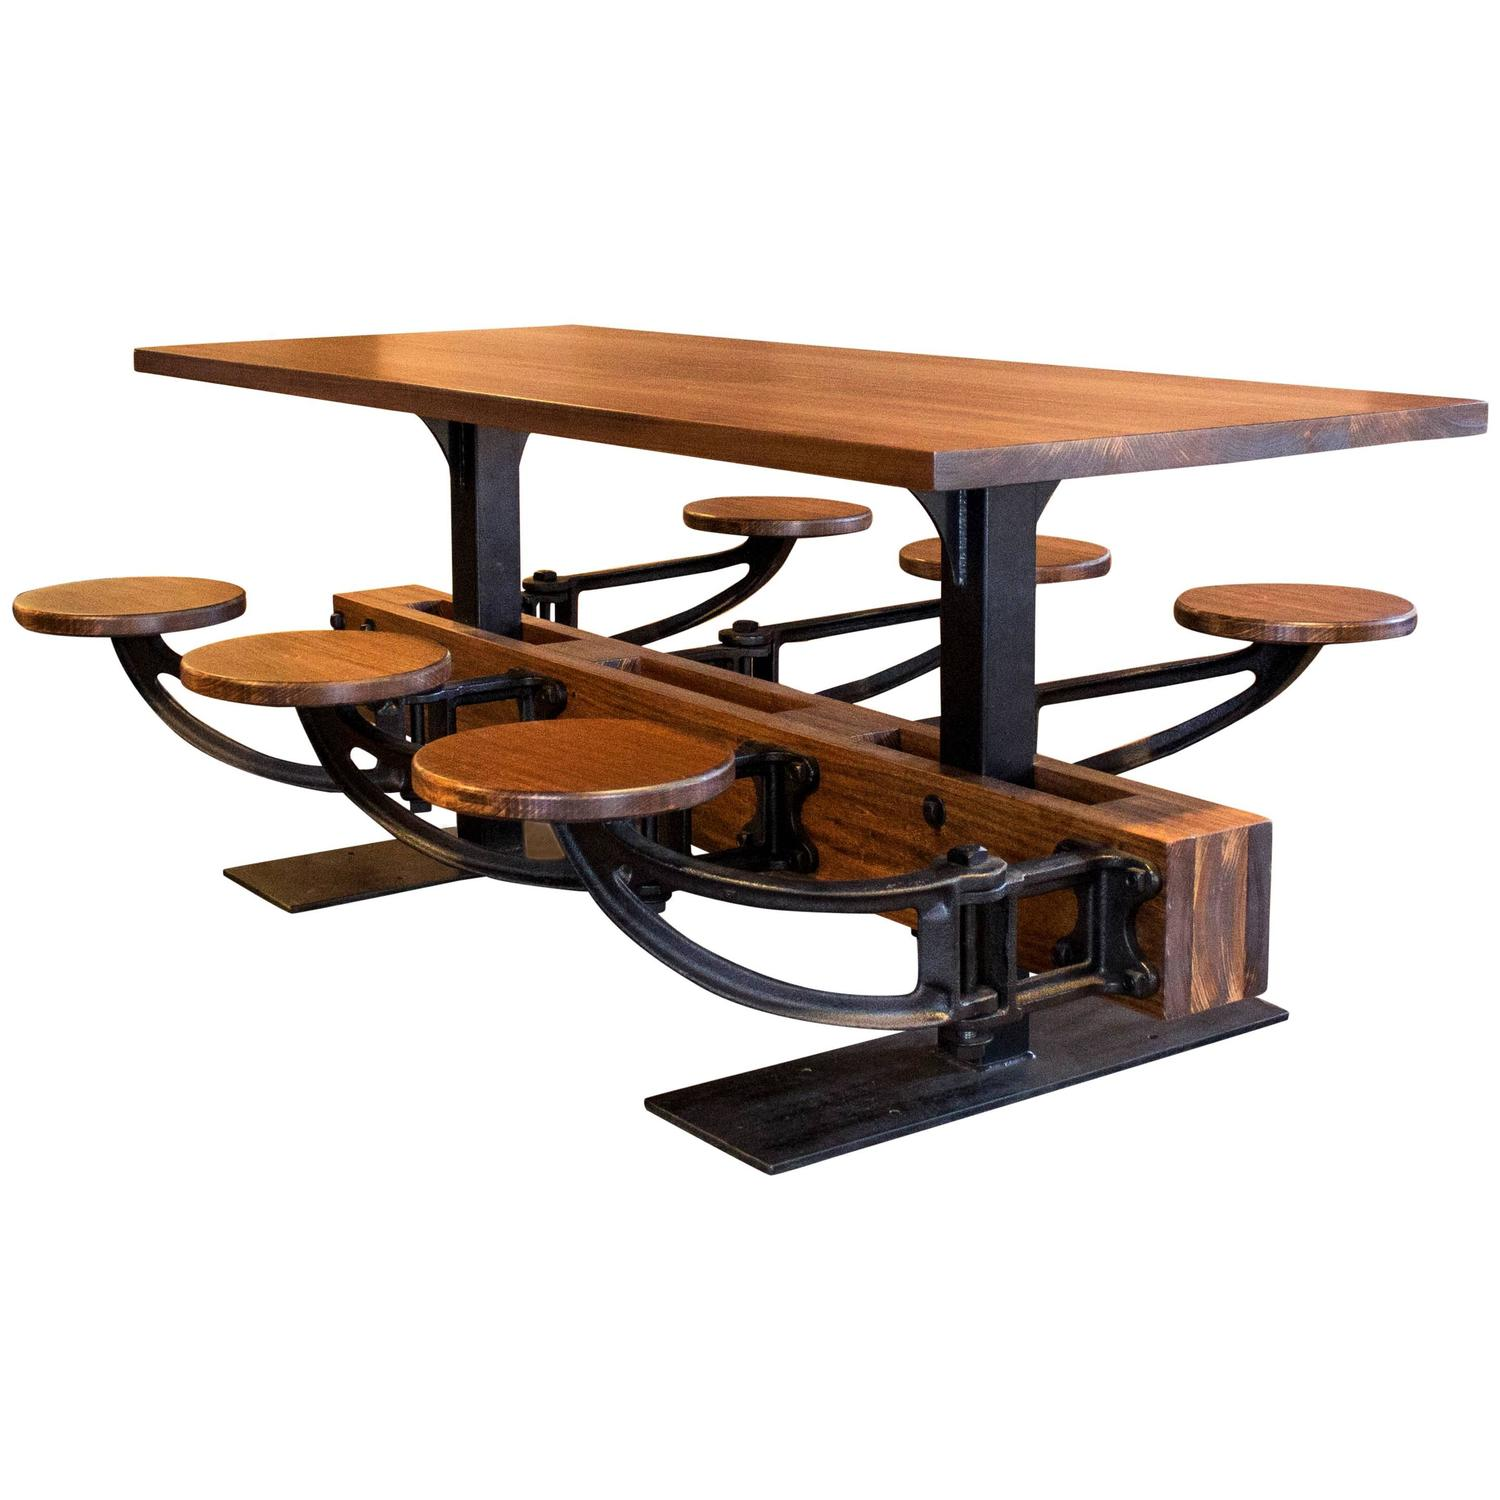 Dining Table Set: Vintage Industrial Iron Cafeteria Swing Out Seat Kitchen  For Sale At 1stdibs